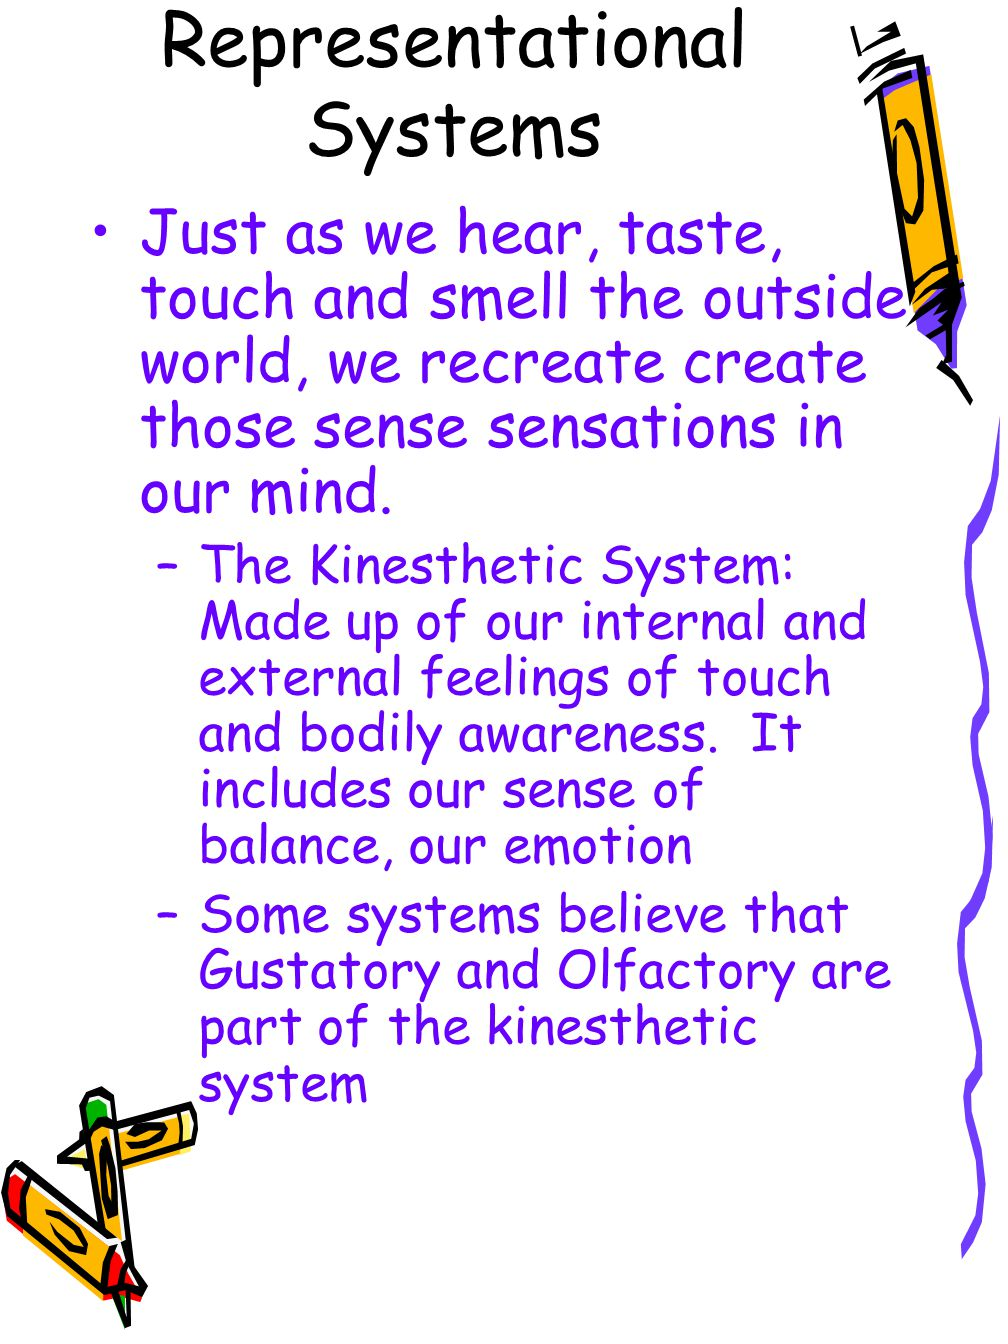 Representational Systems Just as we hear, taste, touch and smell the outside world, we recreate create those sense sensations in our mind.